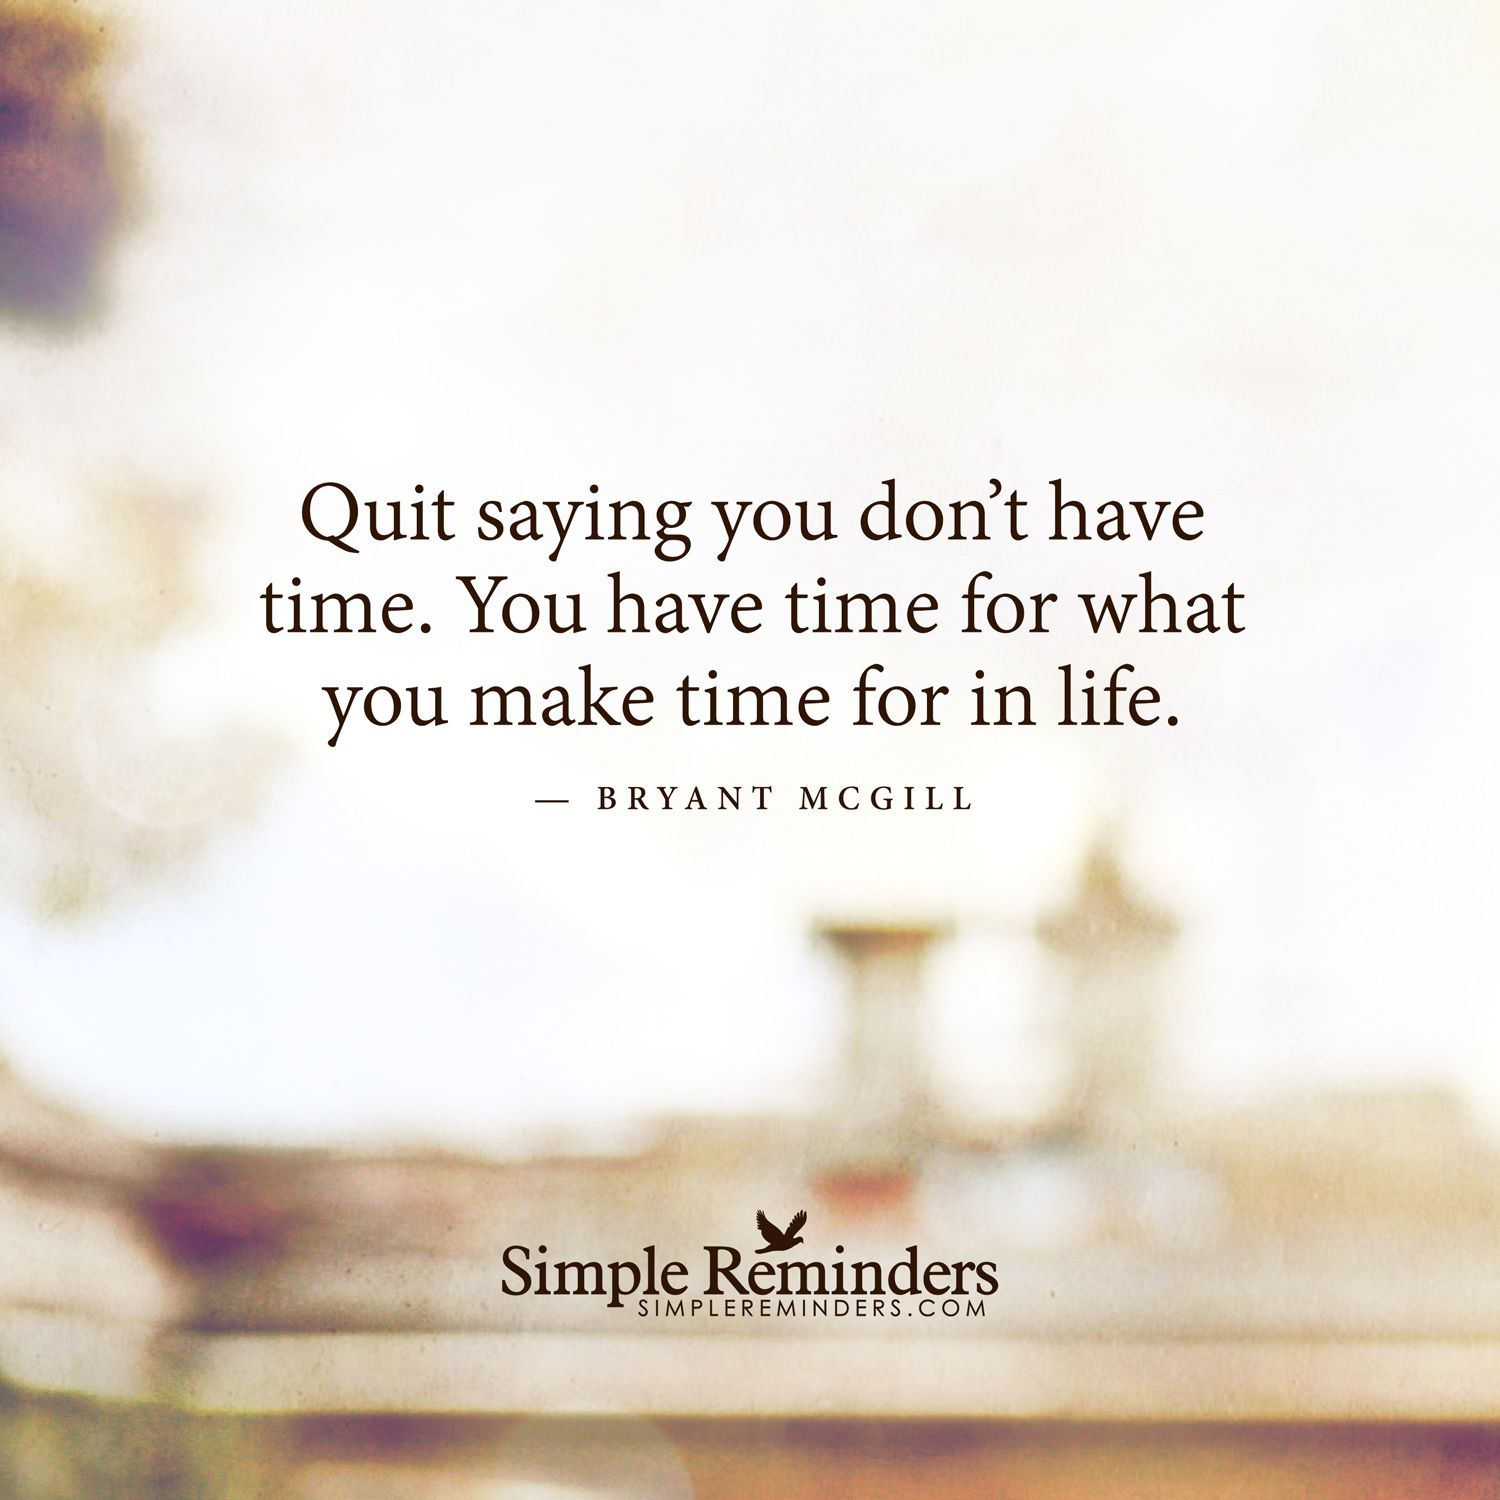 """Quit Saying You Don't Have Time. You Have Time For What"